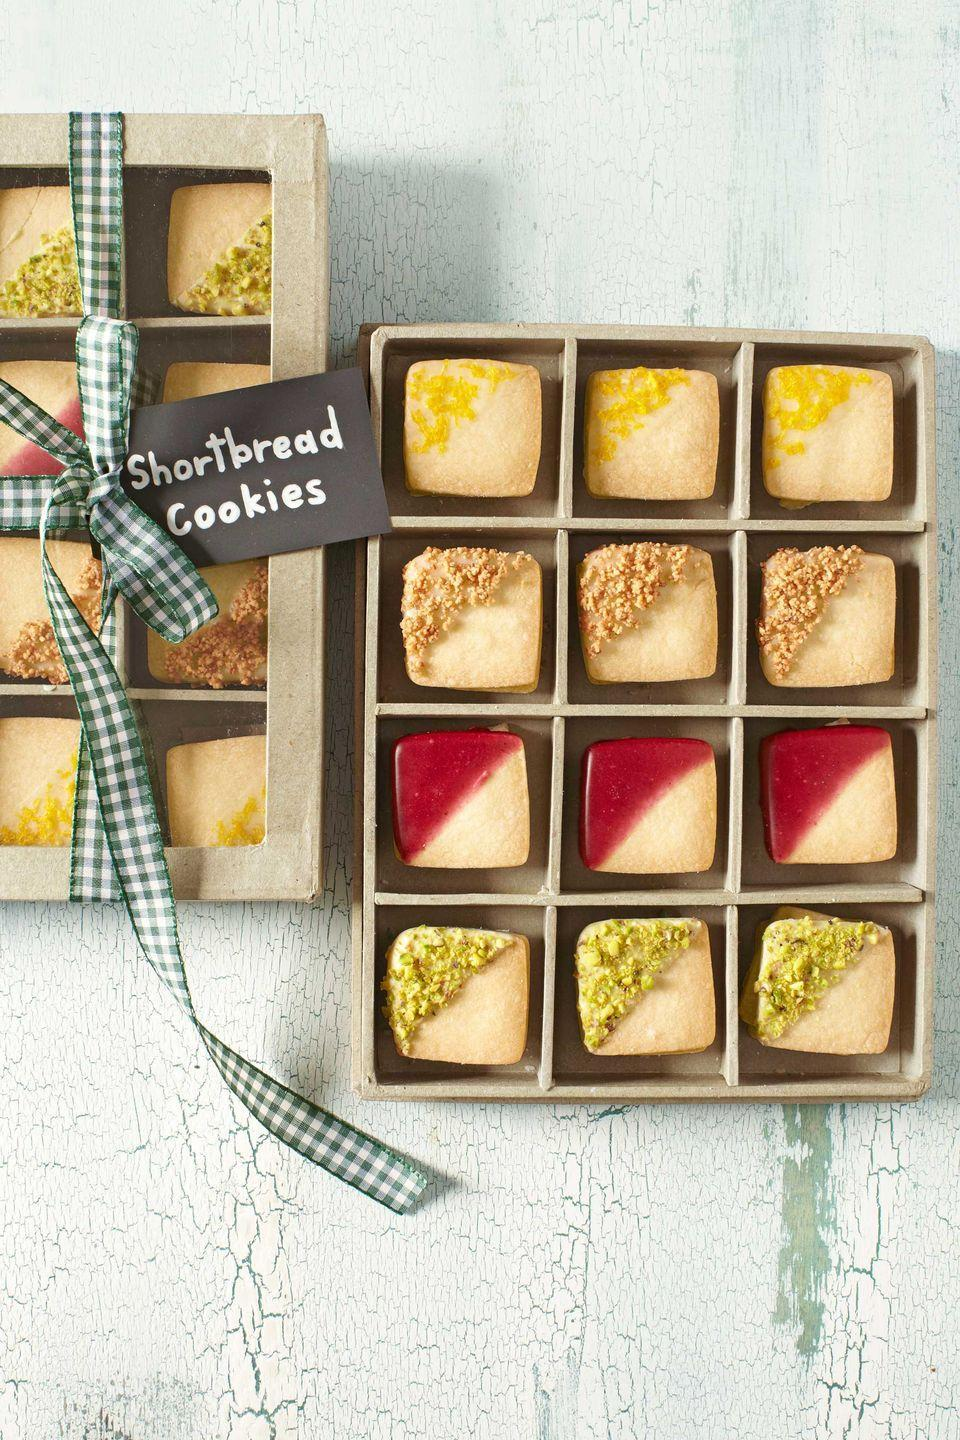 "<p>Displayed in a clear-topped checkerboard box, bite-size shortbread cookies—dipped in fruity glazes, chopped nuts, and citrus zest—pass for tiny works of art. Bonus: The sturdy container can later hold other petite treasures like jewelry or sewing notions.</p><p><strong><a href=""https://www.countryliving.com/food-drinks/recipes/a4224/shortbread-cookies-recipe-clv1212/"" rel=""nofollow noopener"" target=""_blank"" data-ylk=""slk:Get the recipe"" class=""link rapid-noclick-resp"">Get the recipe</a>.</strong></p><p><a class=""link rapid-noclick-resp"" href=""https://www.amazon.com/6-5-QT-6-Speed-Tilt-Head-Kitchen-Electric/dp/B07NY886CD/?tag=syn-yahoo-20&ascsubtag=%5Bartid%7C10050.g.2777%5Bsrc%7Cyahoo-us"" rel=""nofollow noopener"" target=""_blank"" data-ylk=""slk:shop stand mixers"">shop stand mixers</a></p>"